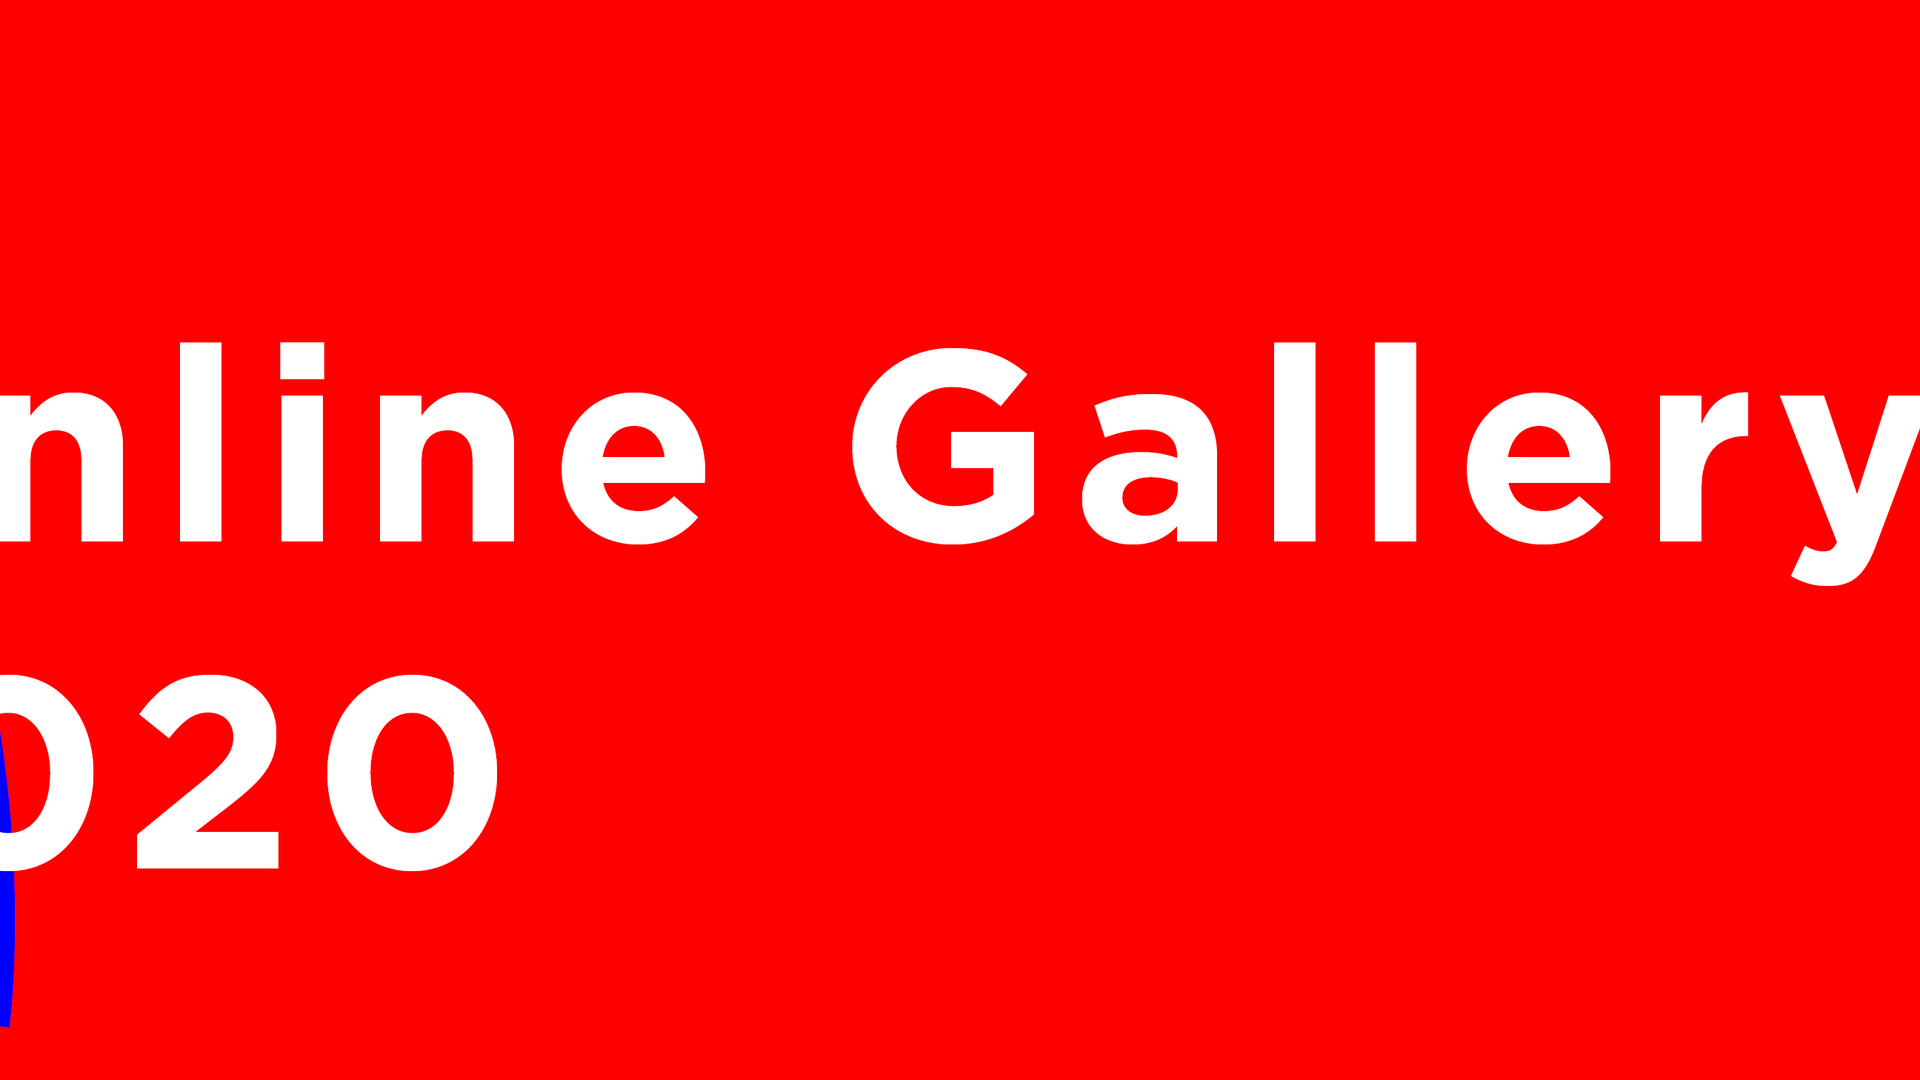 BC Online Gallery banner image.png